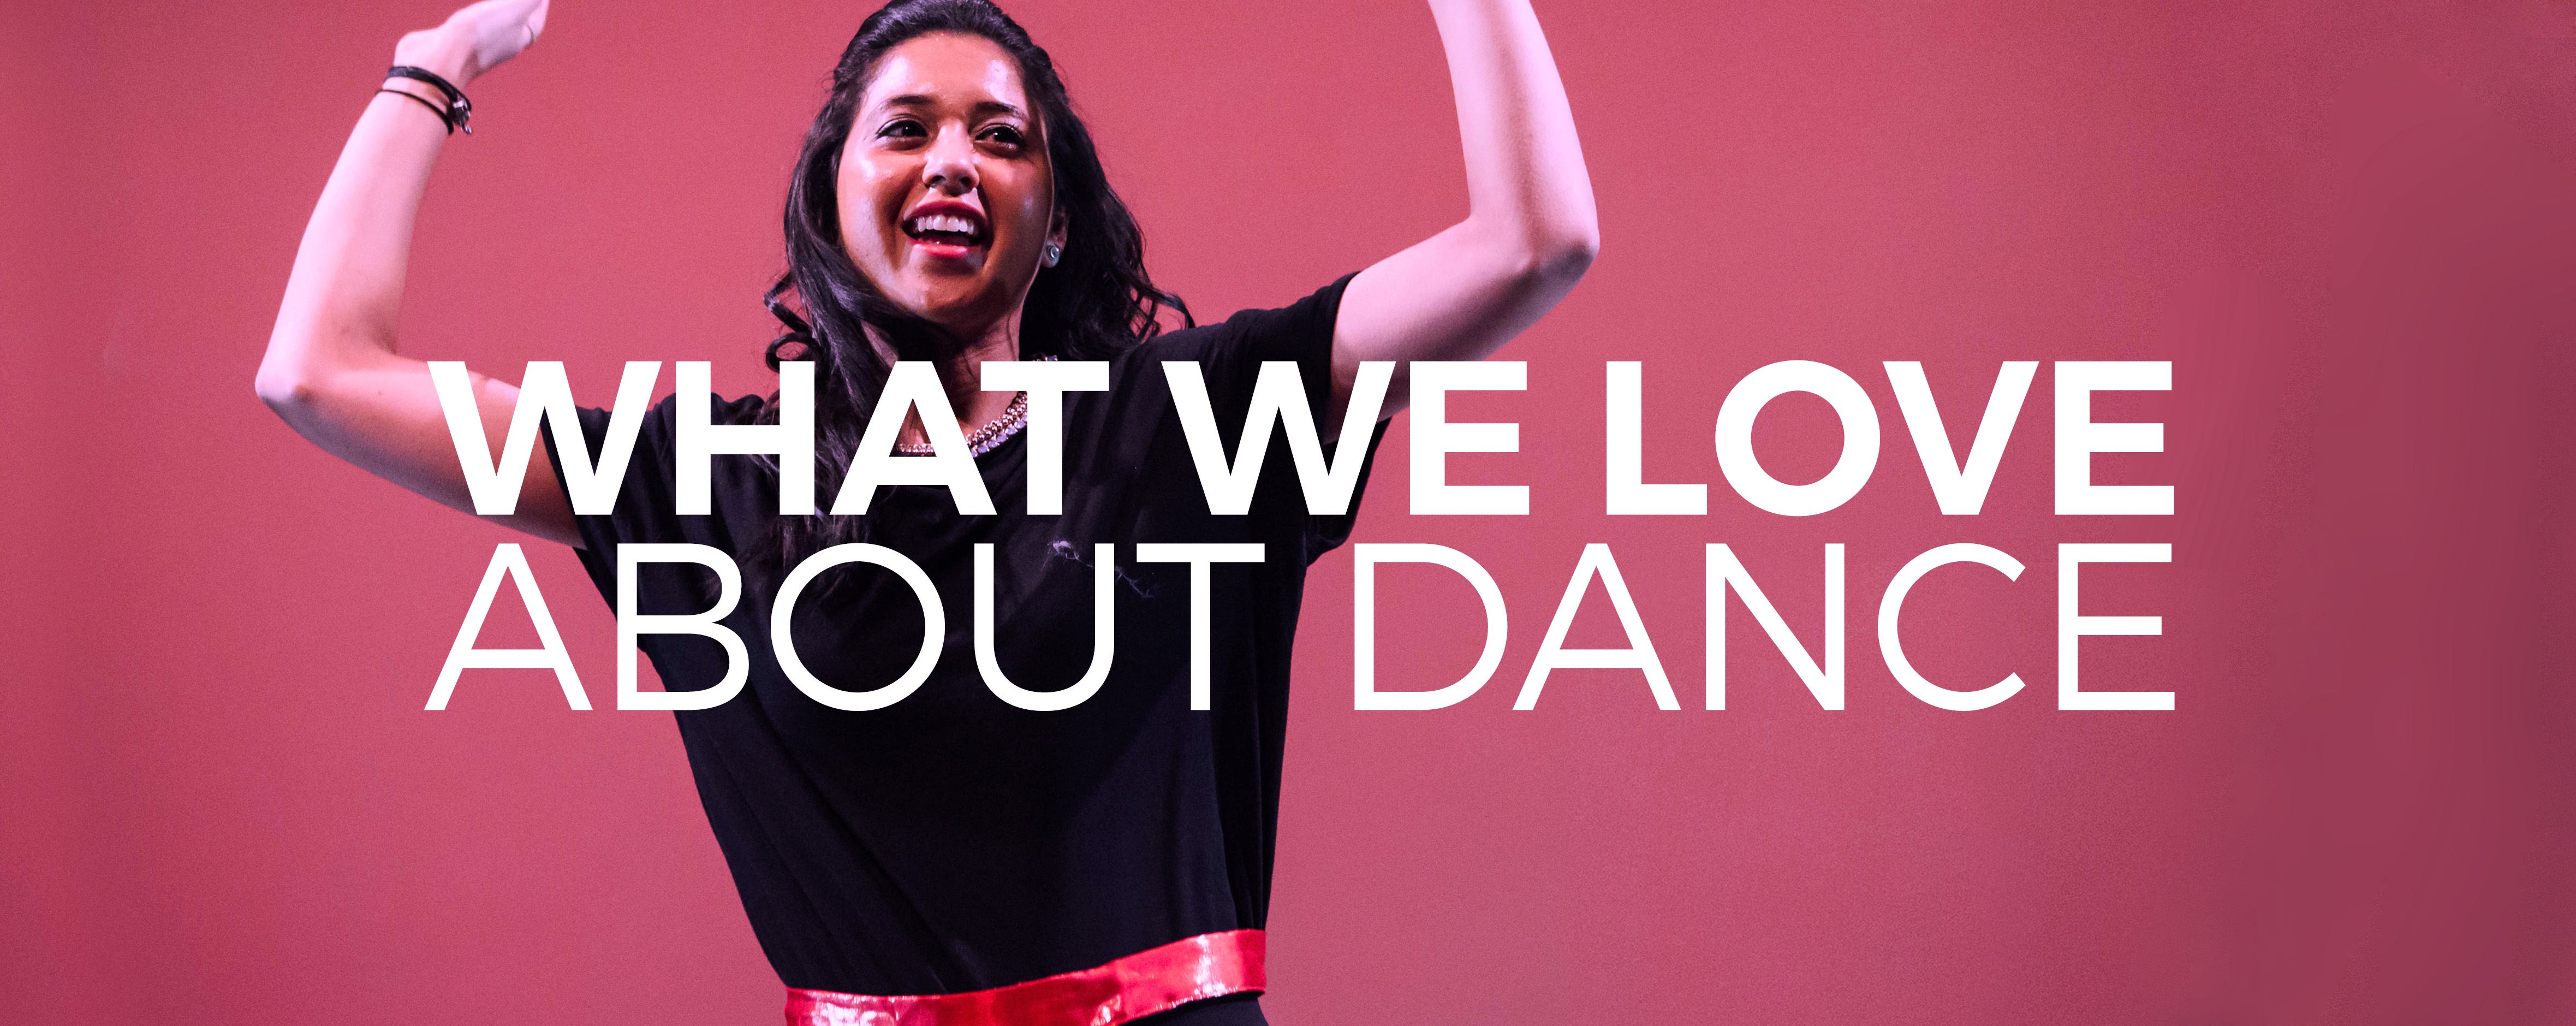 read what dancers love about dancing